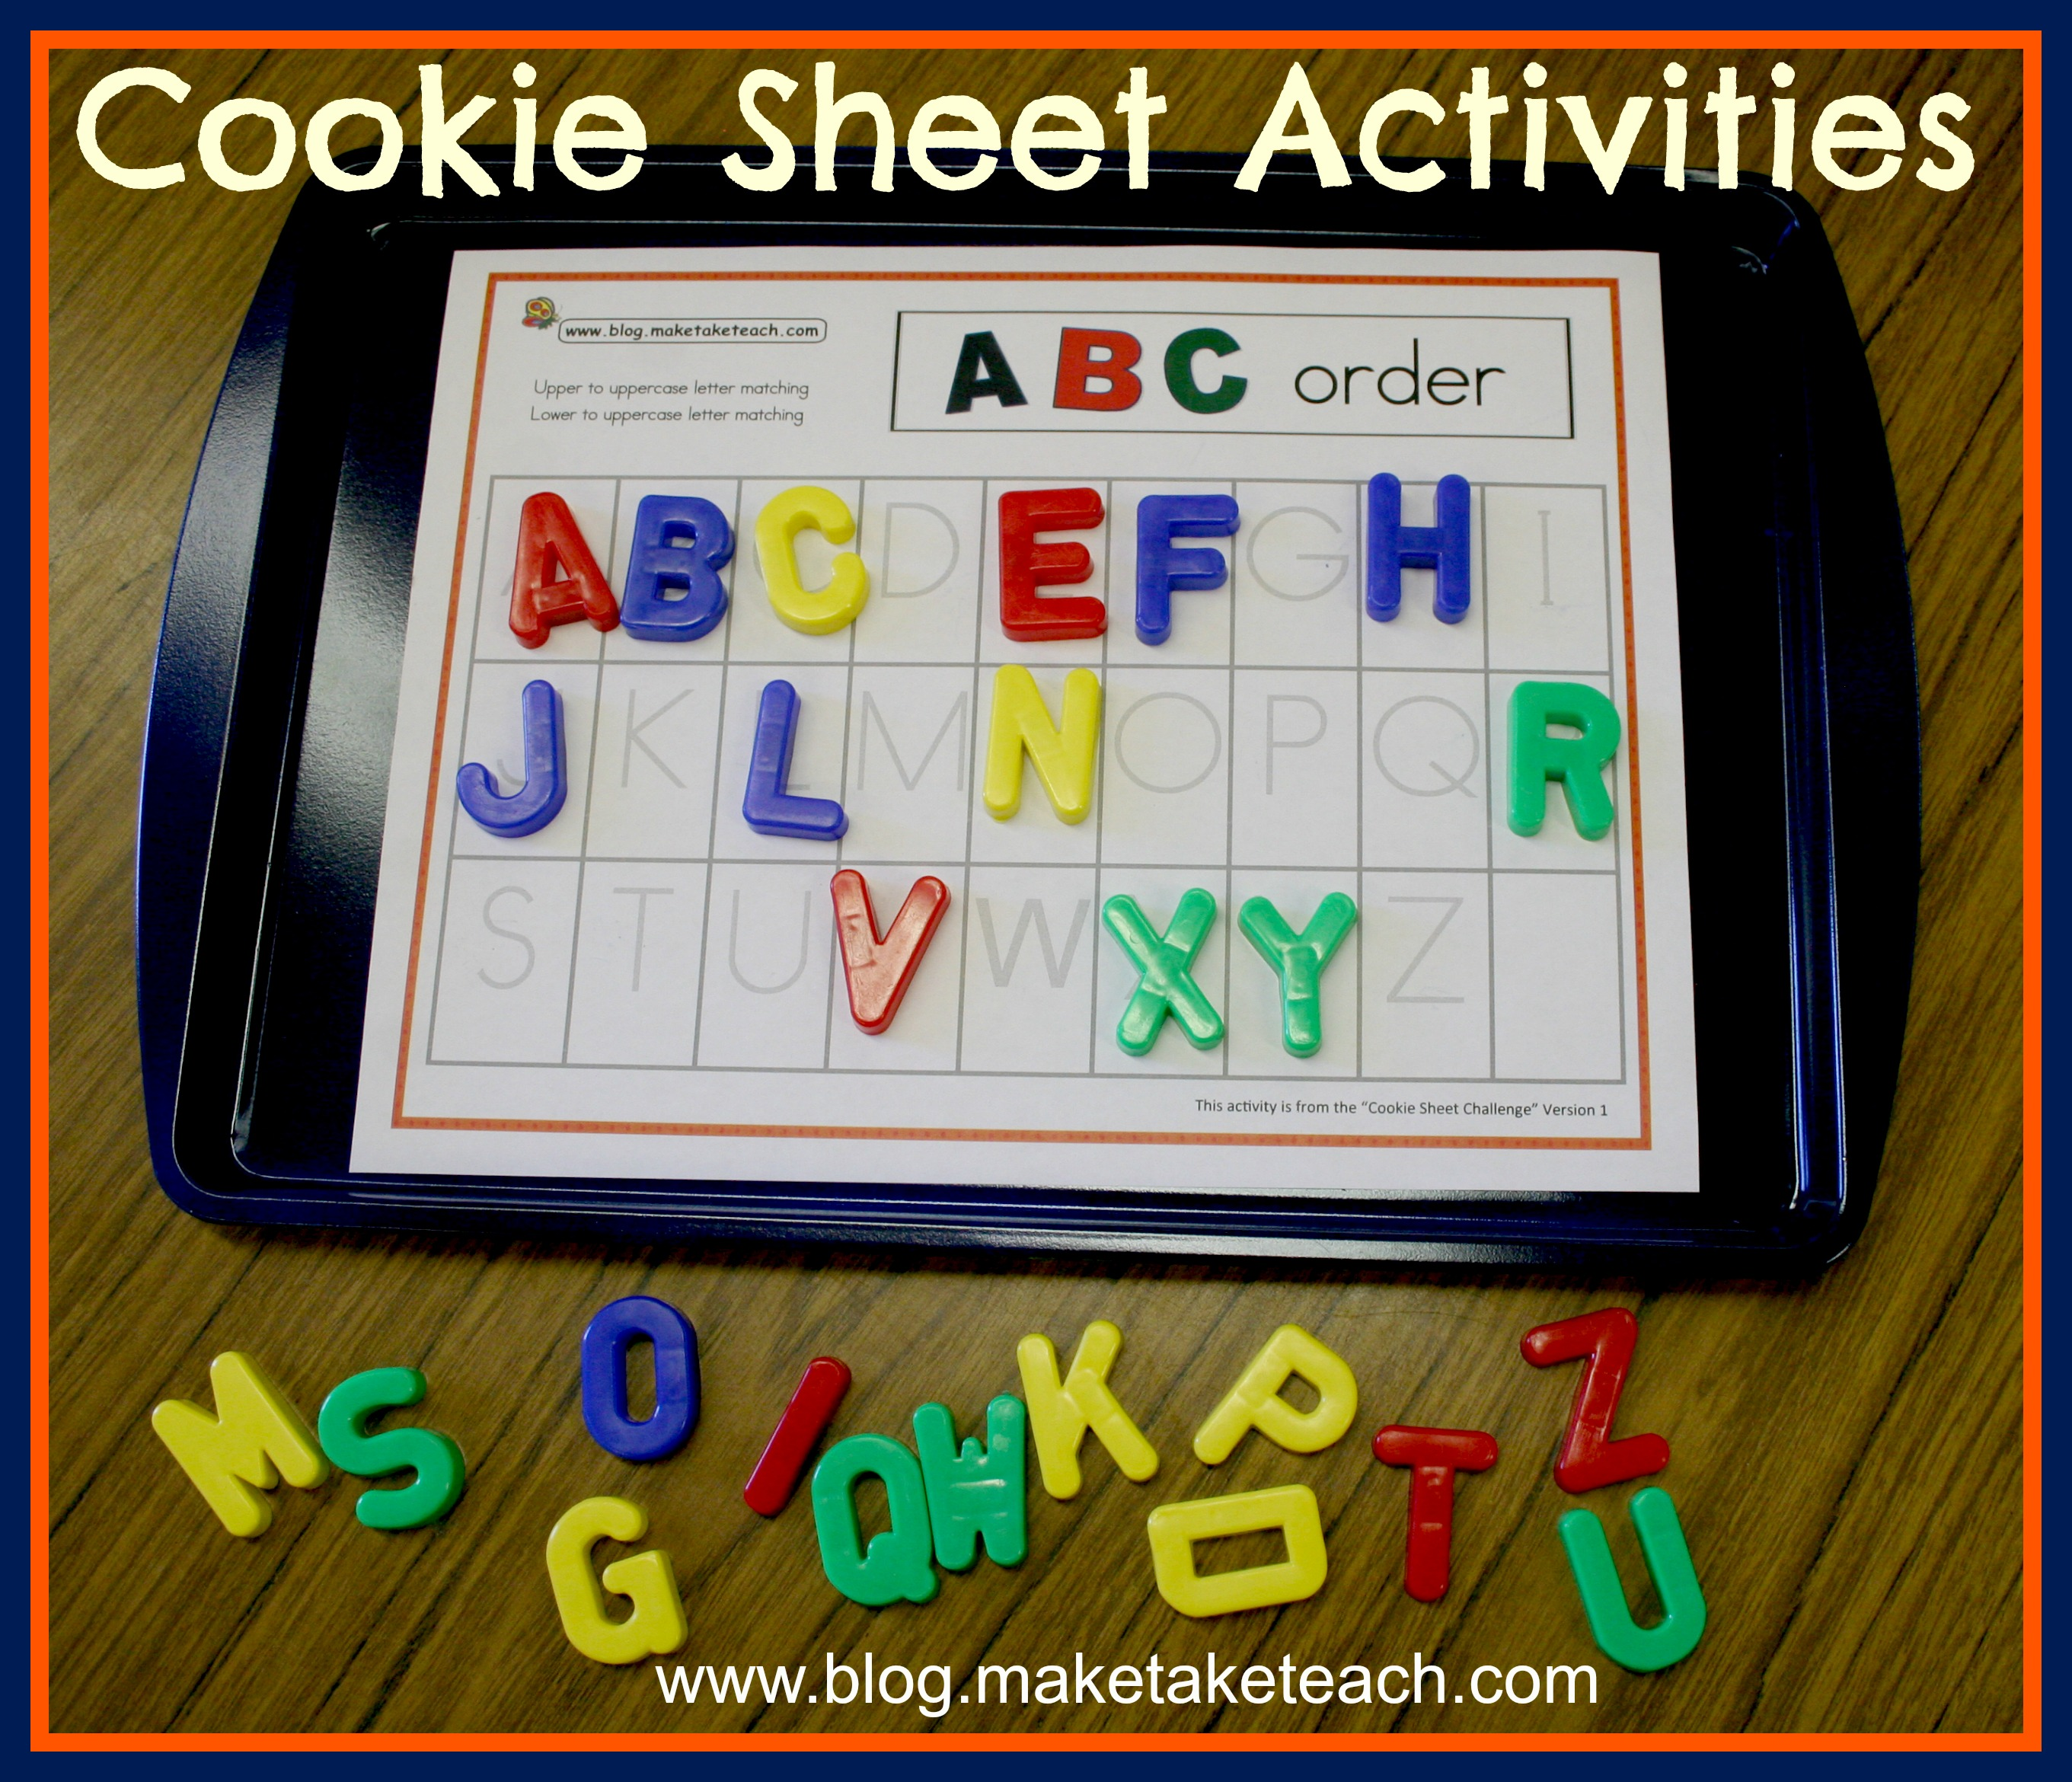 The Cookie Sheet Challenge